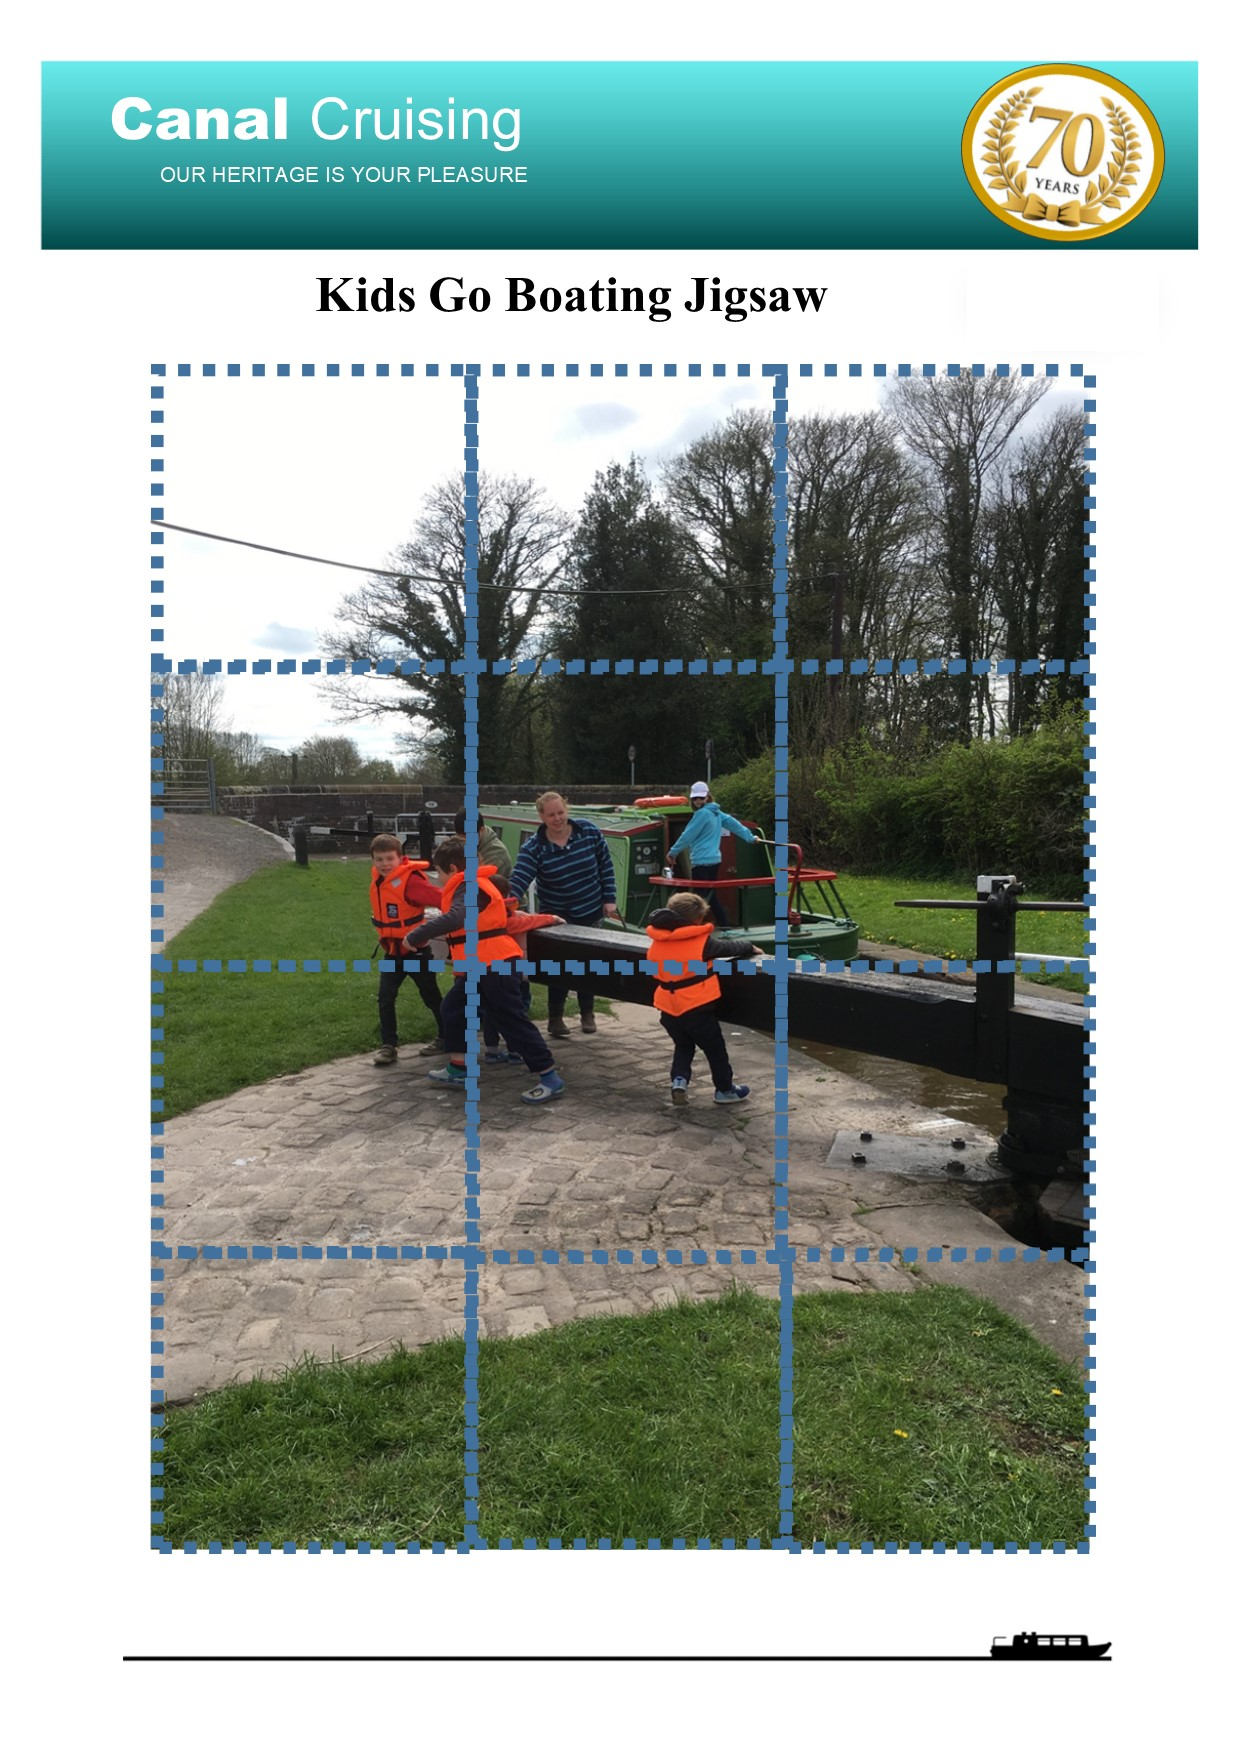 Kids go boating jigsaw